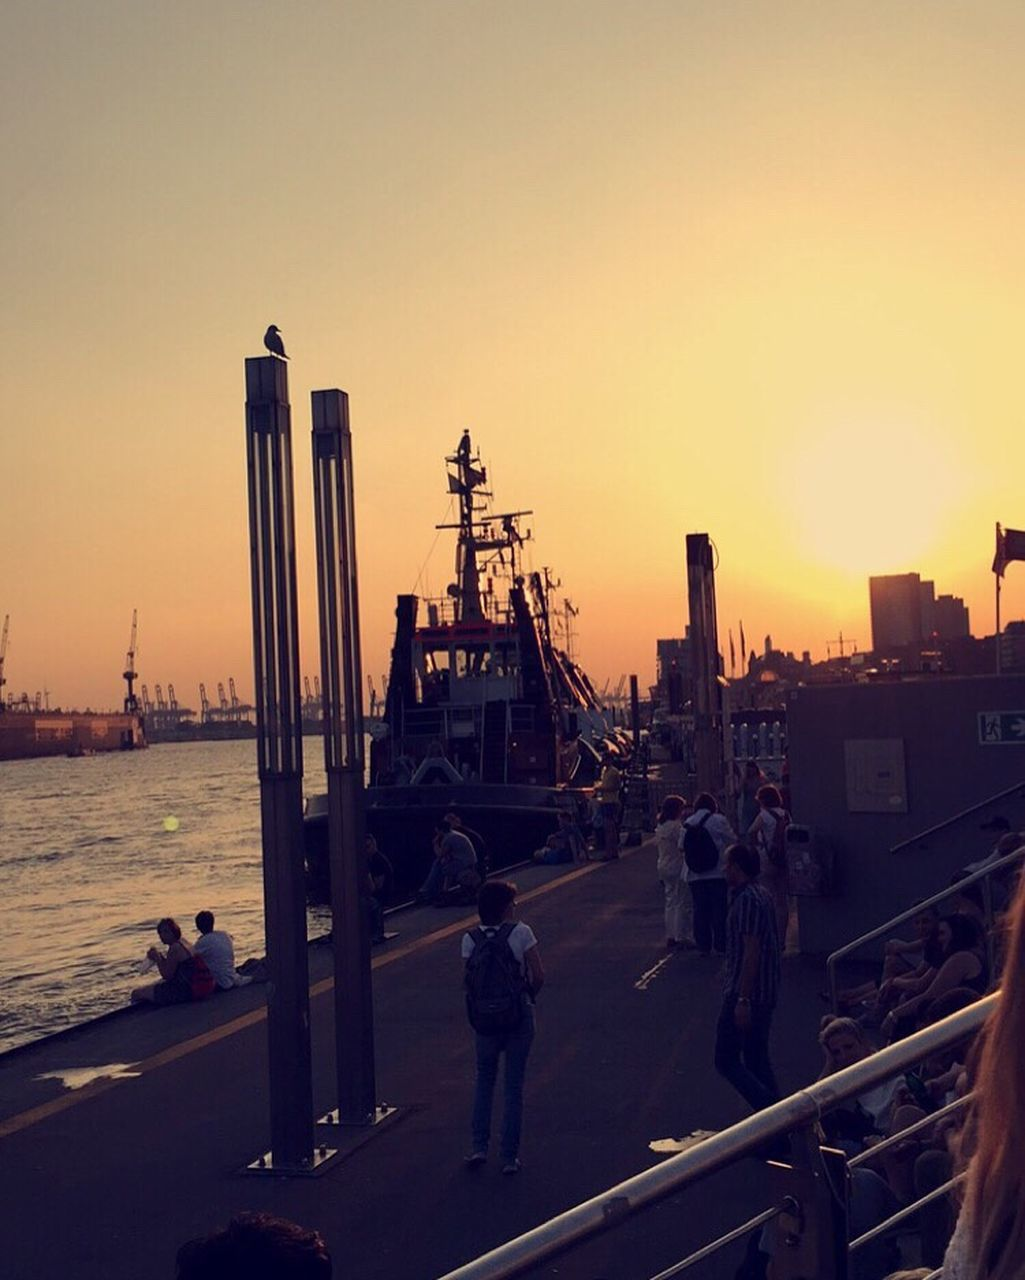 sunset, built structure, sea, clear sky, sky, large group of people, silhouette, men, architecture, lifestyles, real people, nautical vessel, building exterior, city, outdoors, cityscape, people, adult, day